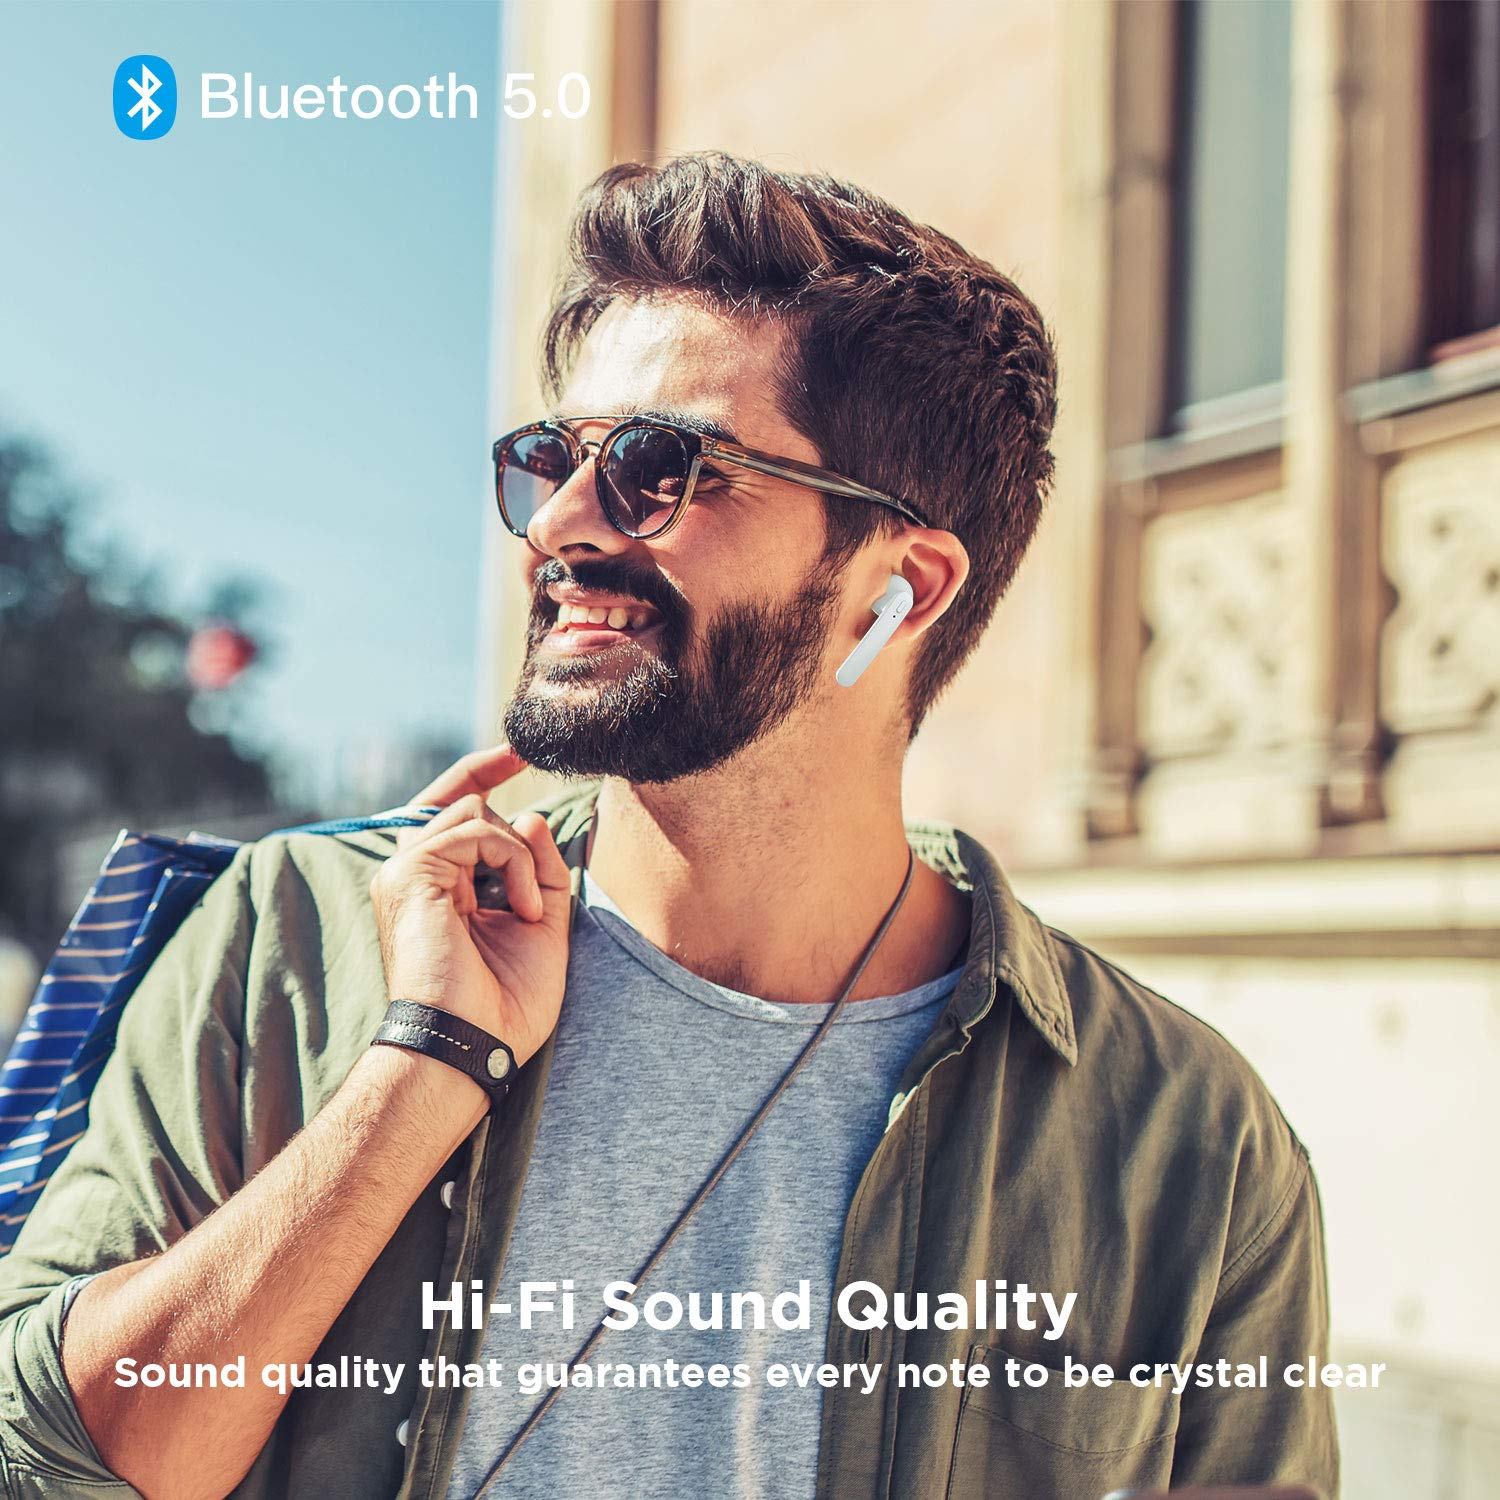 Wireless Earbuds, Letsfit Bluetooth 5.0 Headphones True Wireless HD Stereo Sound Earbuds, in-Ear Headset 24h Playtime with Built-in Mic Portable Charging Case